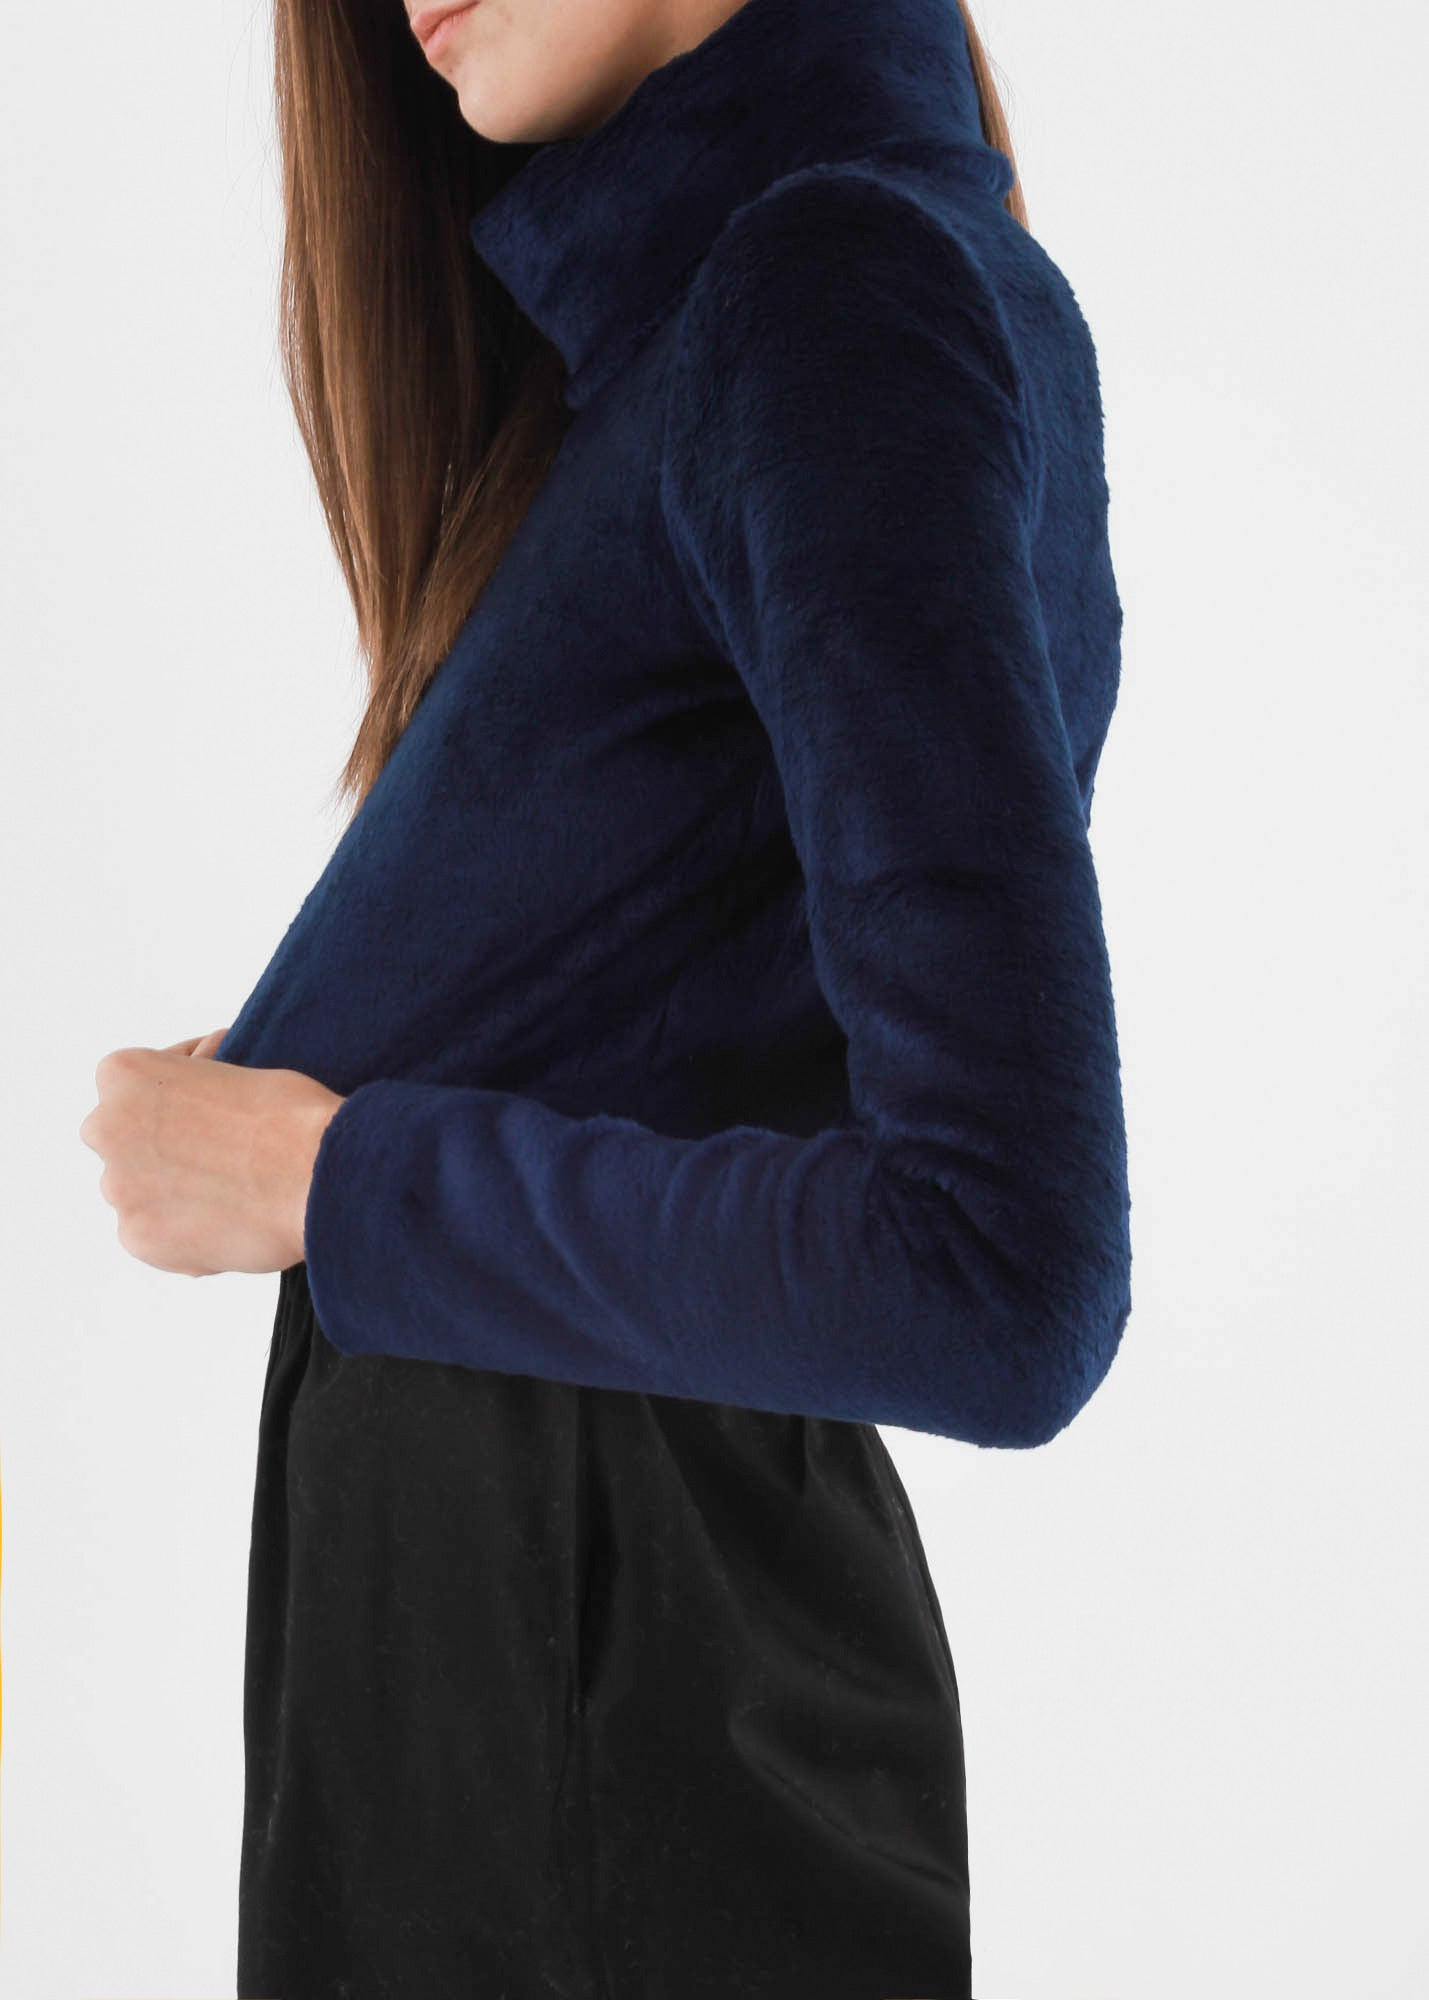 Carleen Navy Funnel Neck Sweater - New Classics Studios